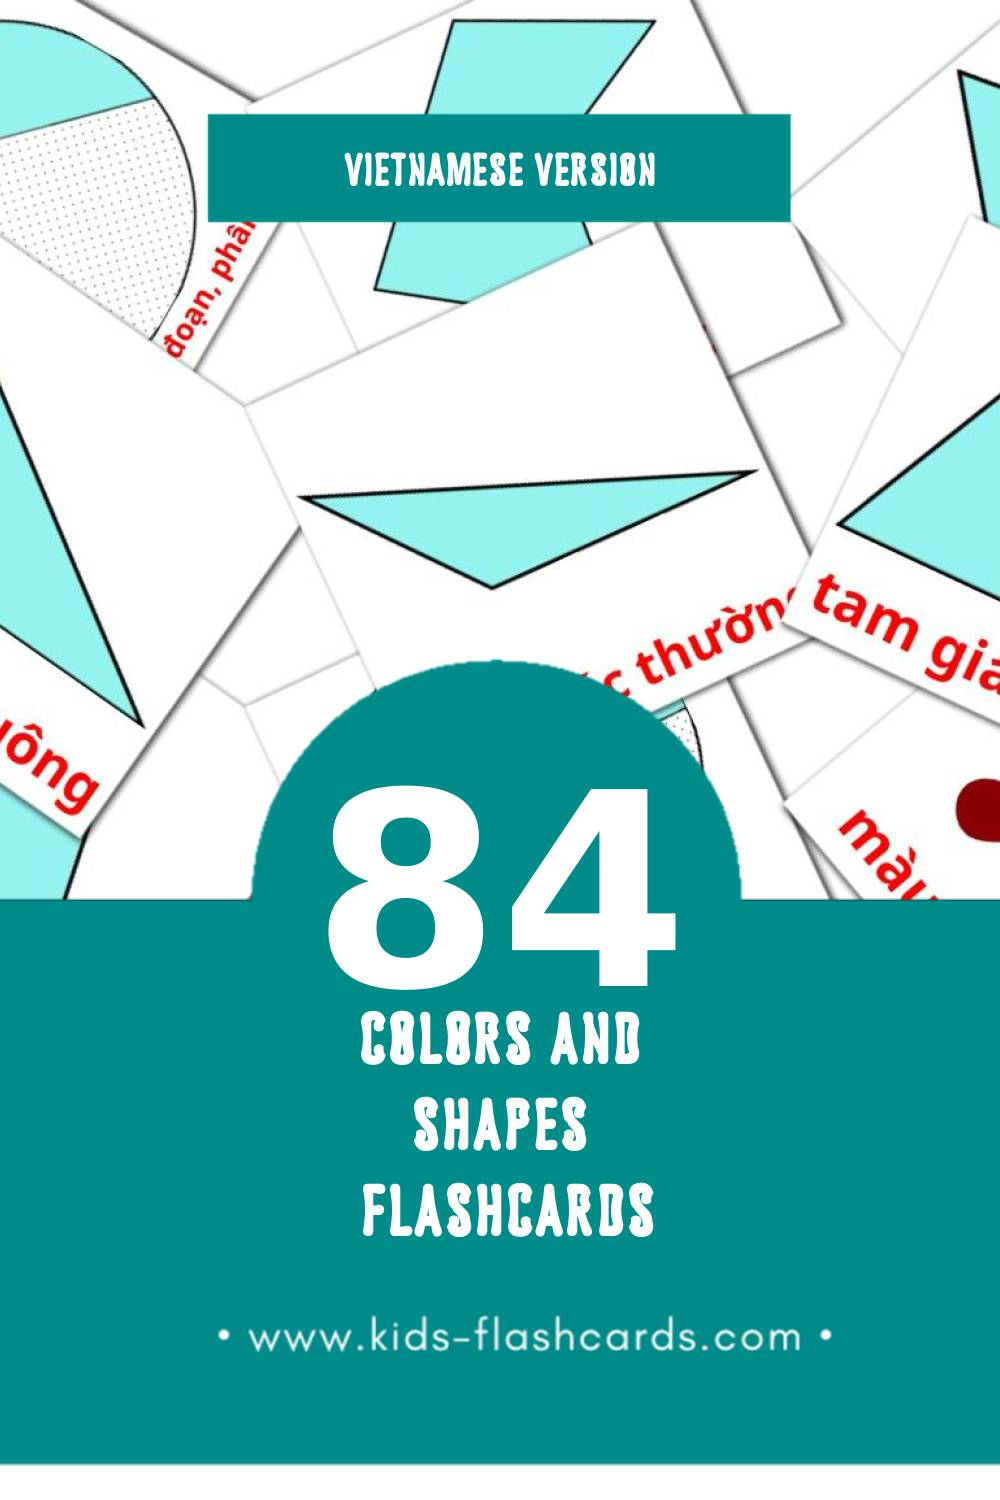 Visual . Flashcards for Toddlers (12 cards in Vietnamese)